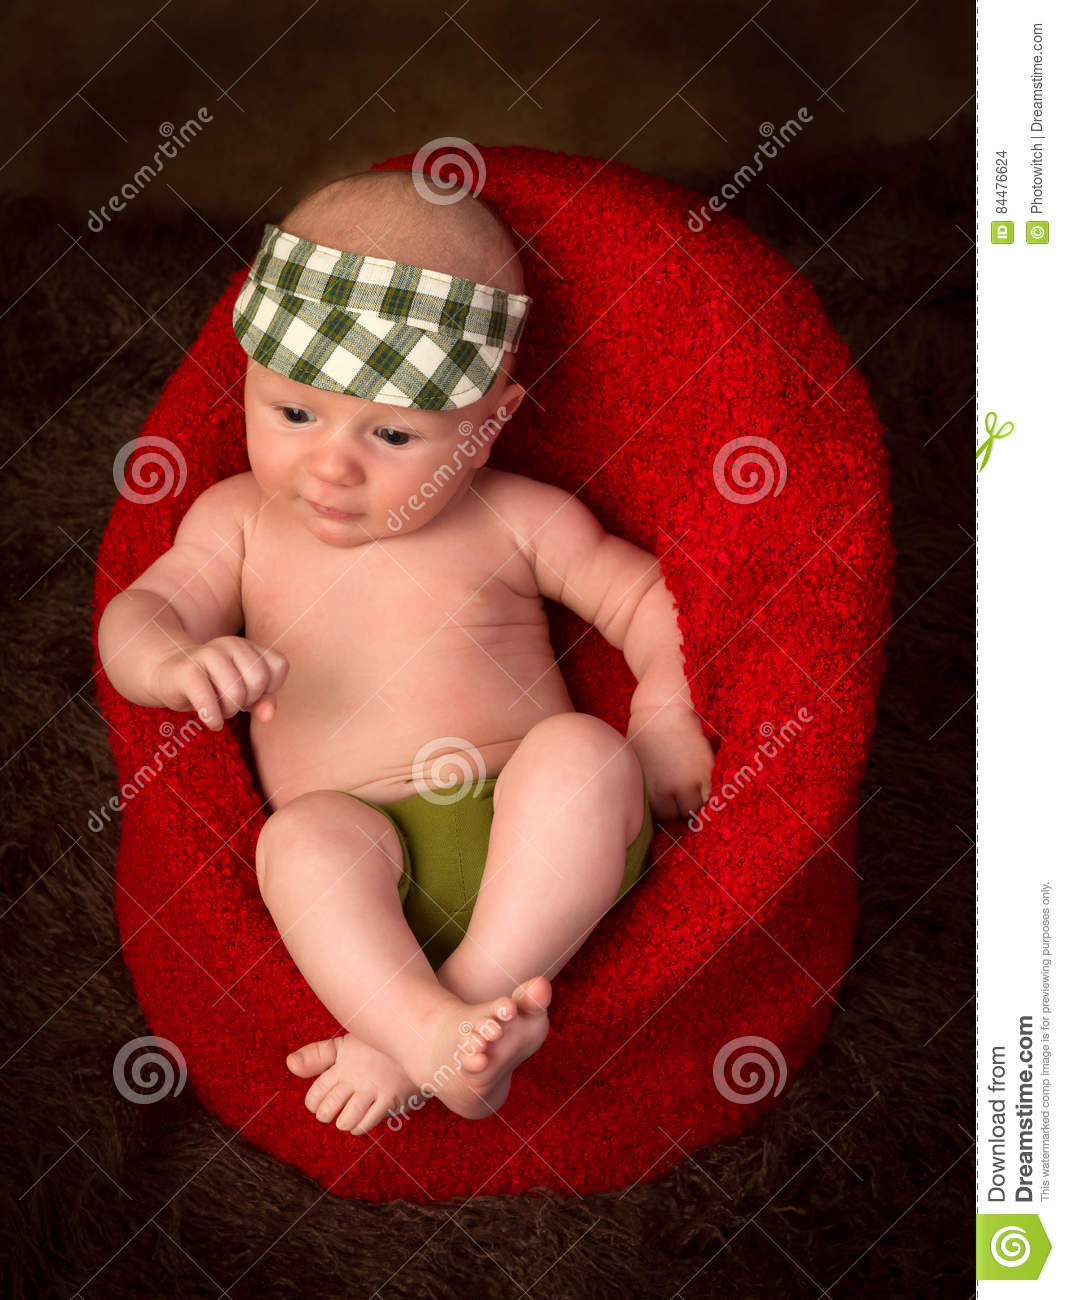 Newborn baby in armchair stock photo. Image of ...